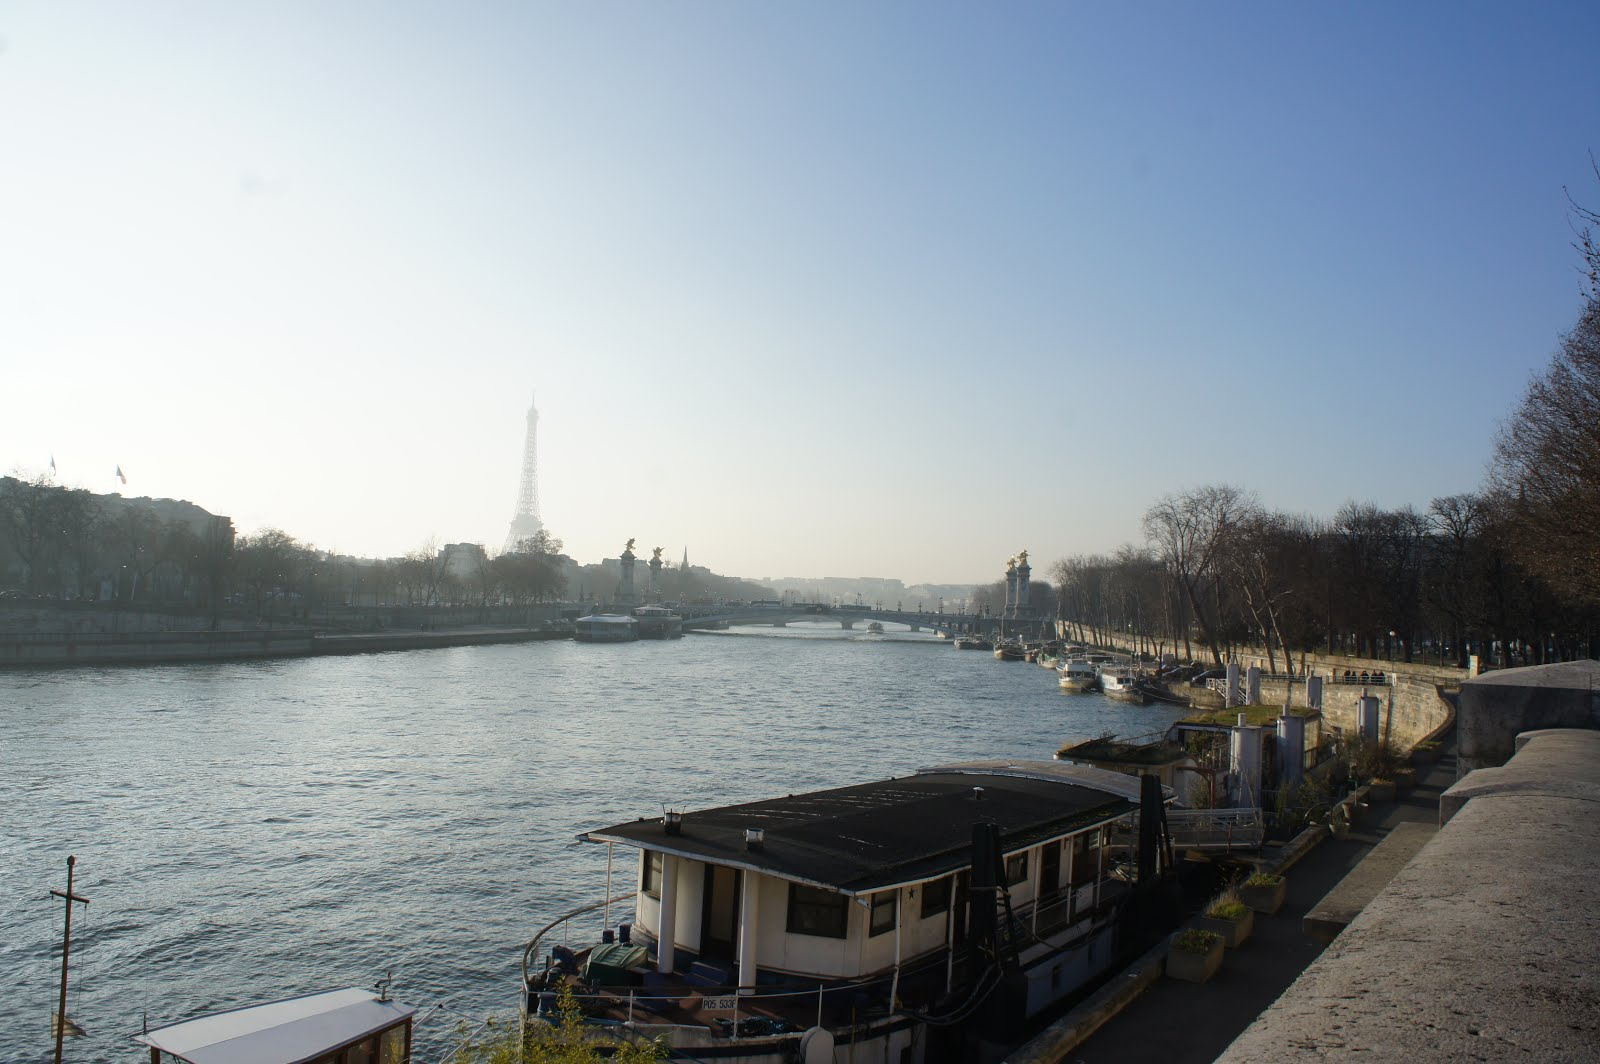 View of the Eiffel Tower and the Pont Alexandre III overlooking the Seine River in Paris